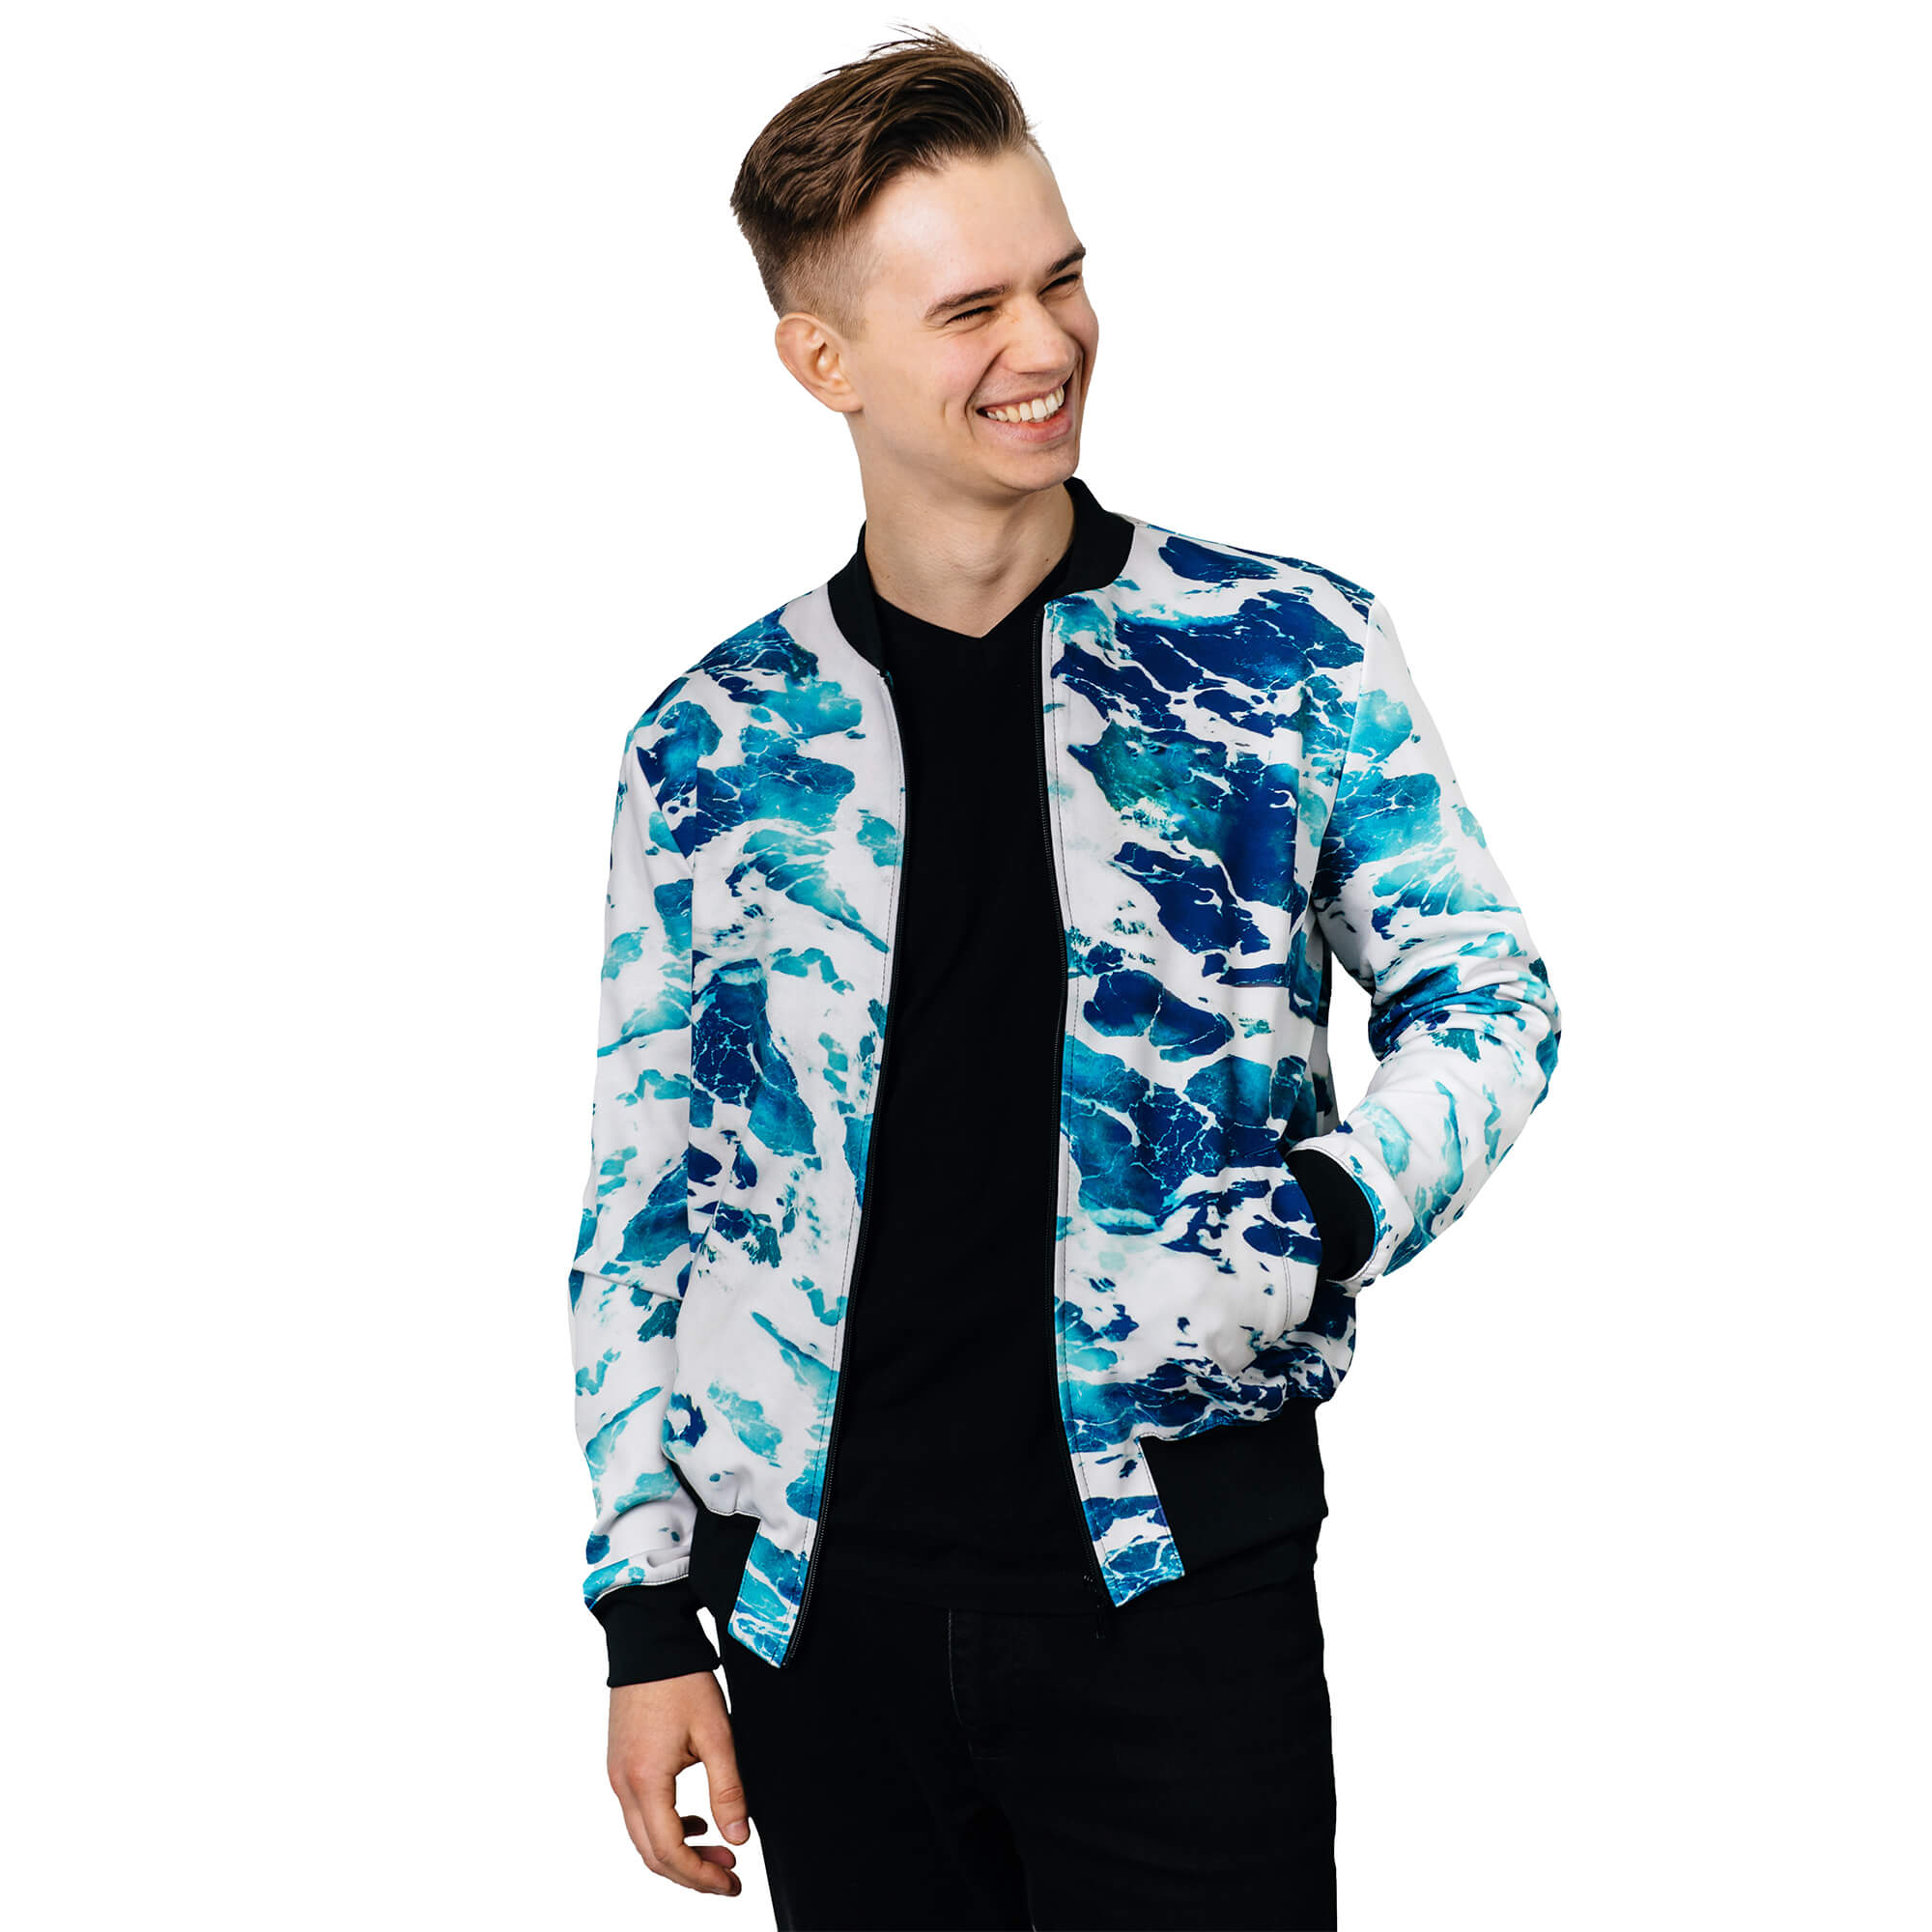 Overflow bomber jacket kurtka neibieska blue sea Full print art clothes Cacofonia Milano